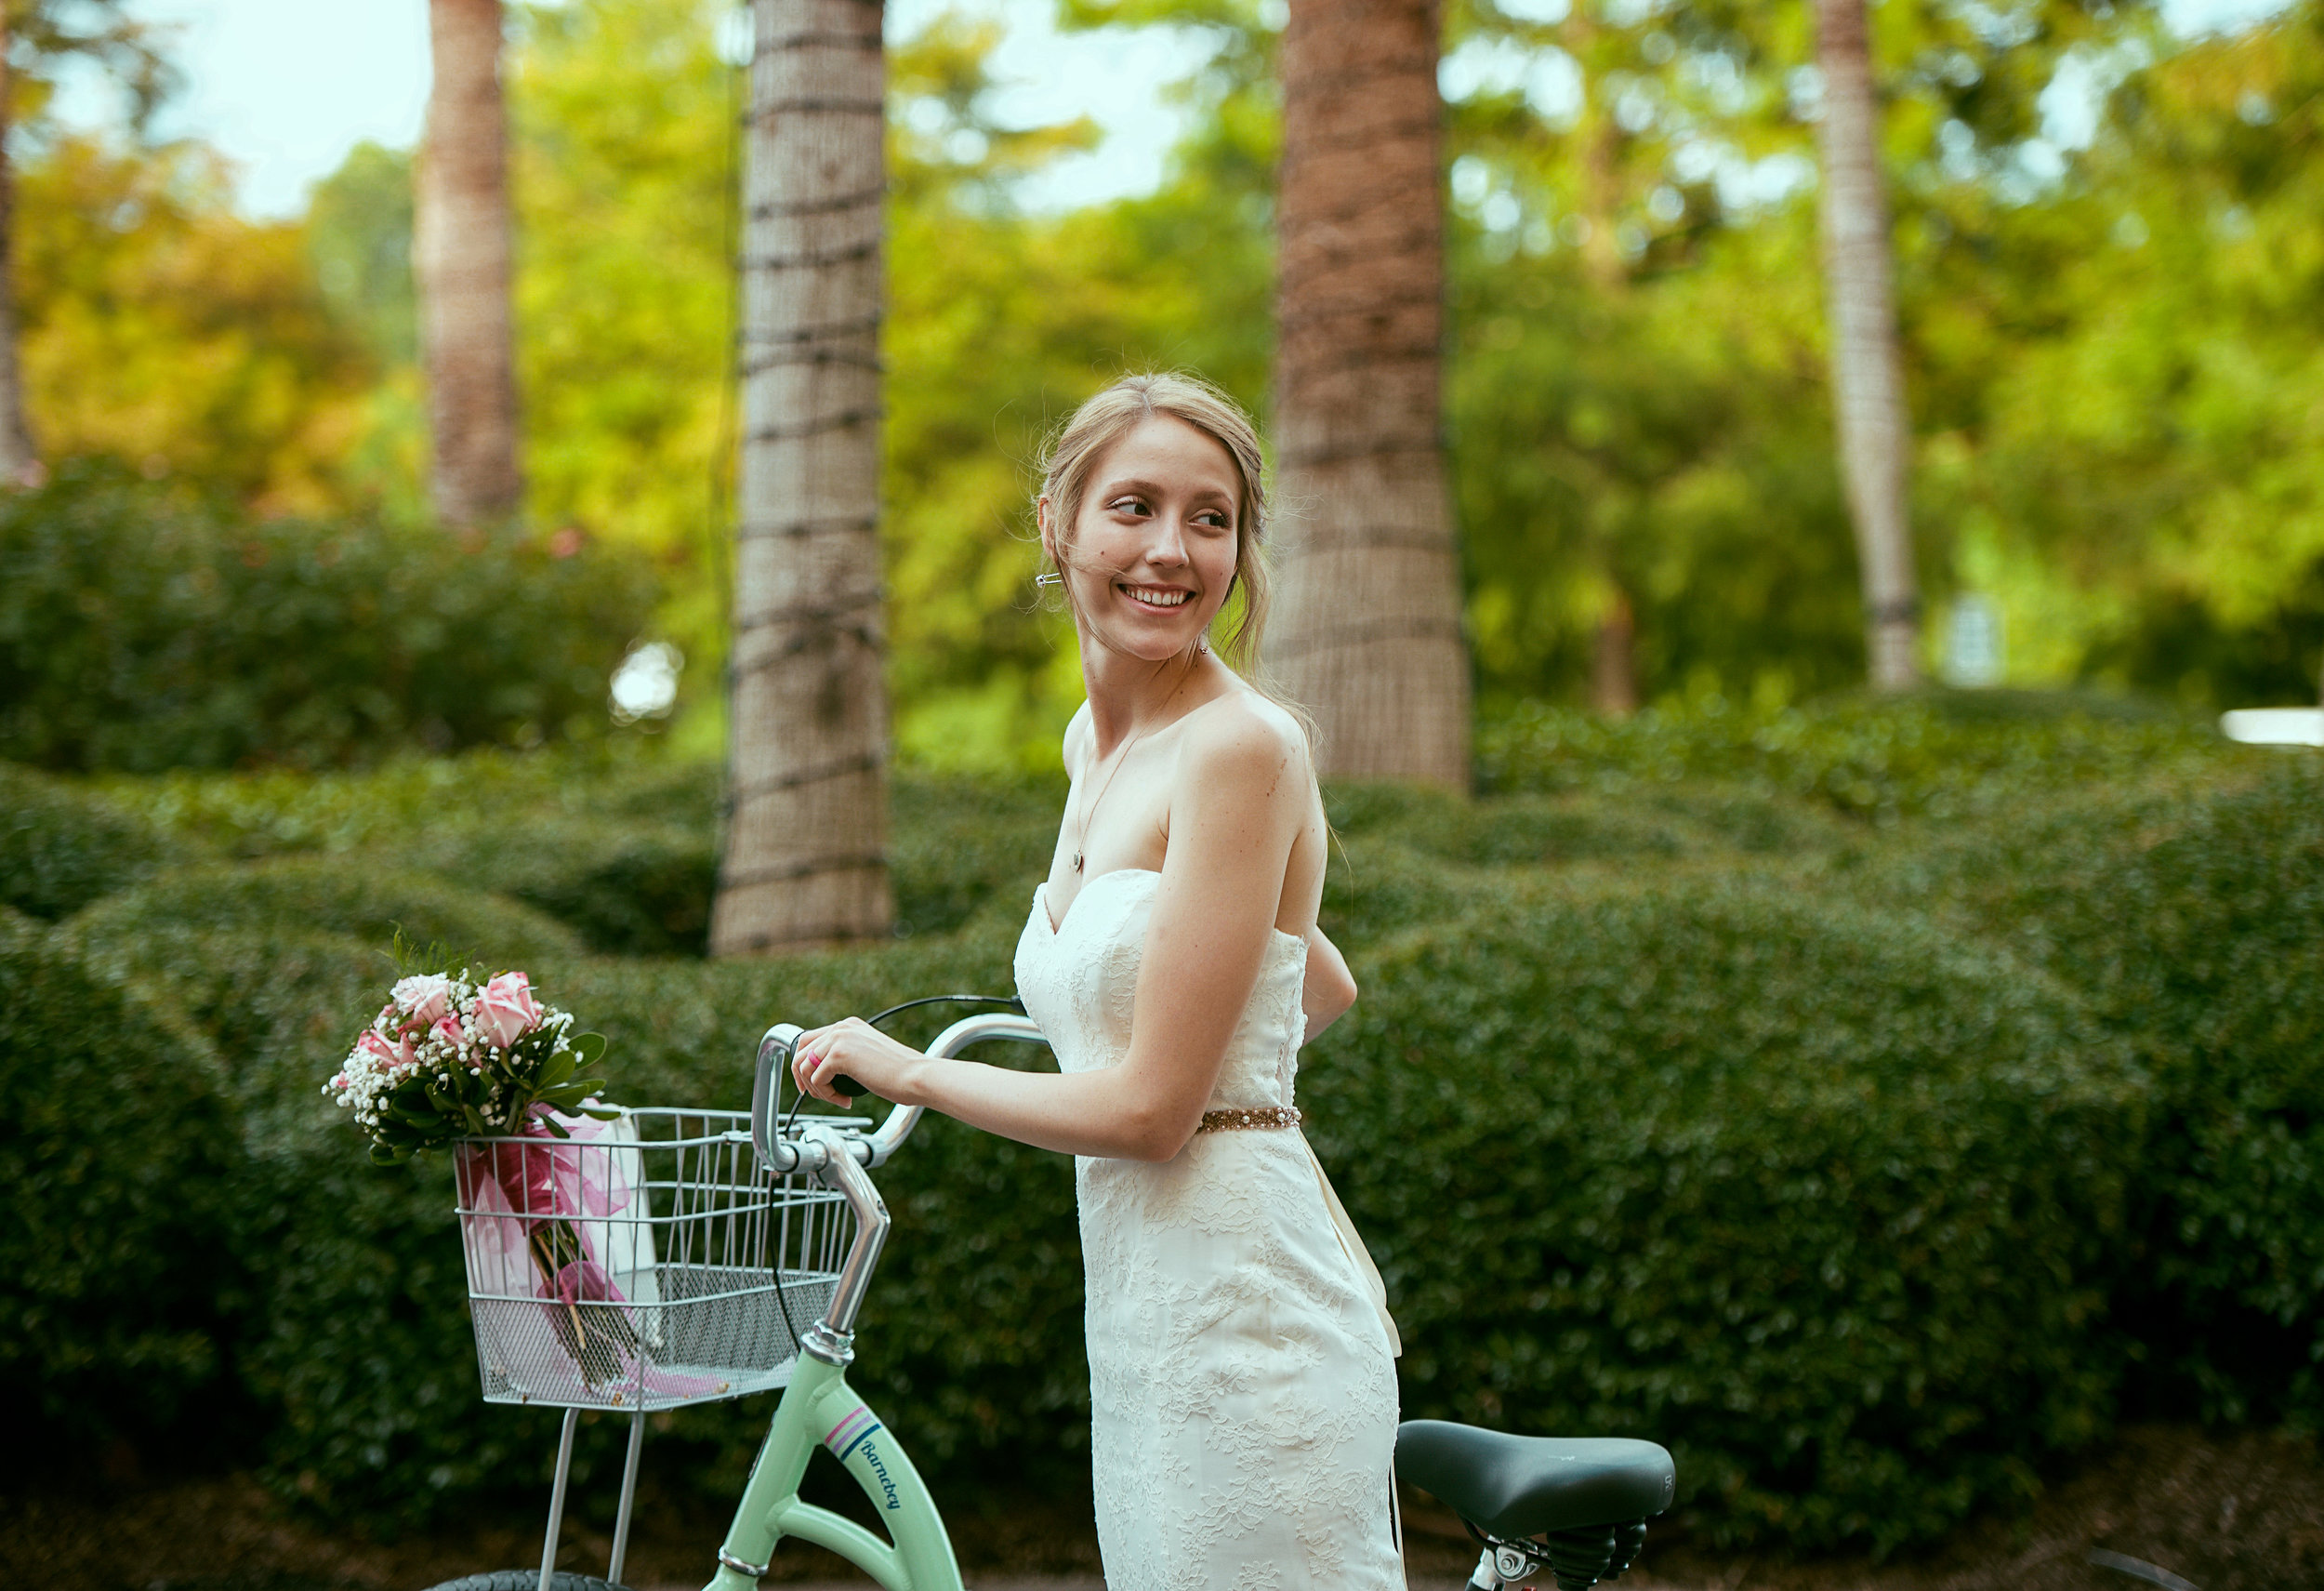 KATIE'S INTIMATE ELOPEMENT AT THE WESTIN